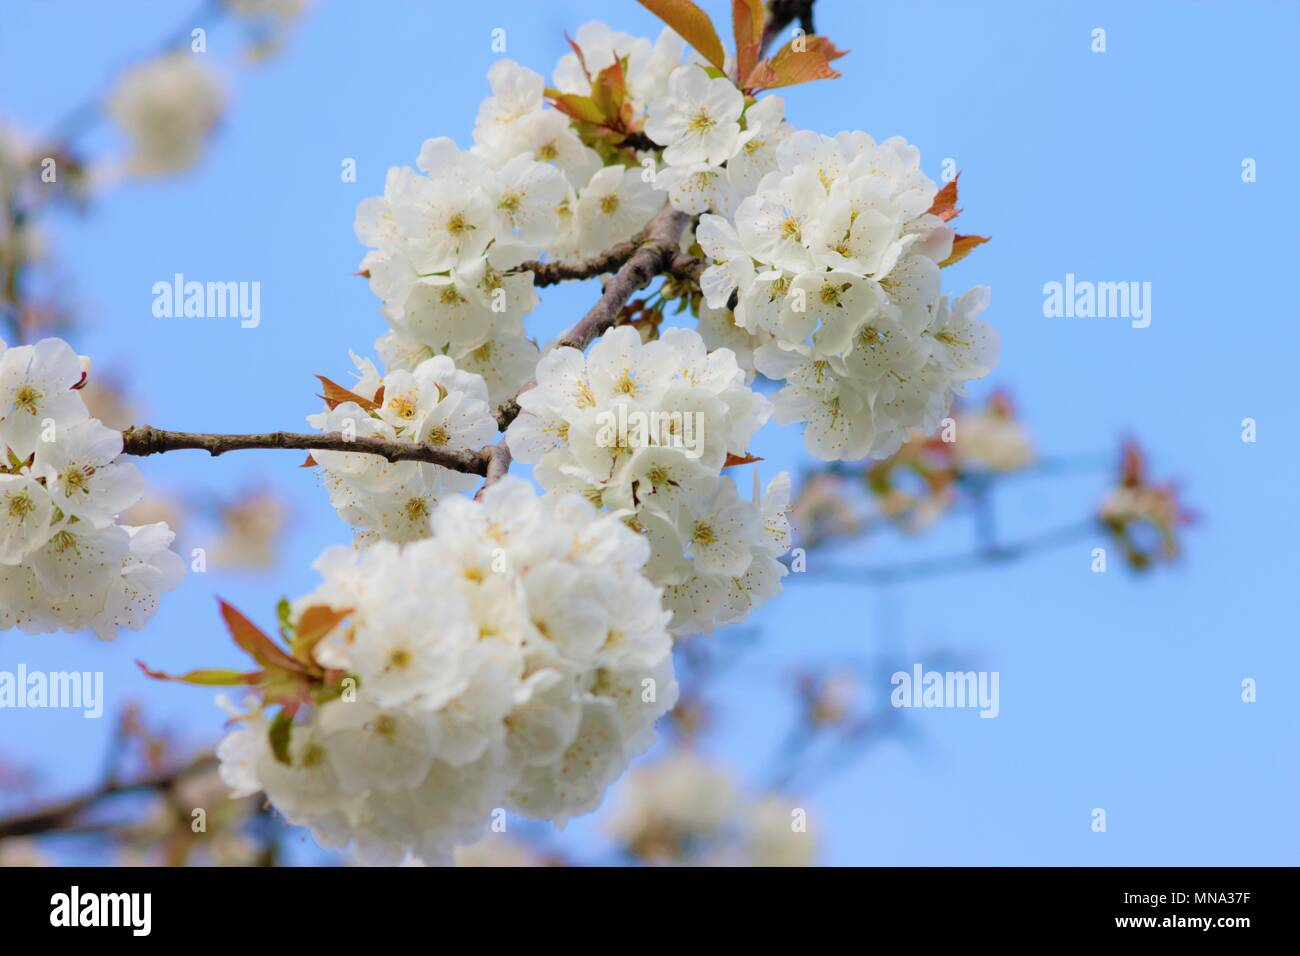 White blossom of the cherry tree in the spring sunshine. - Stock Image